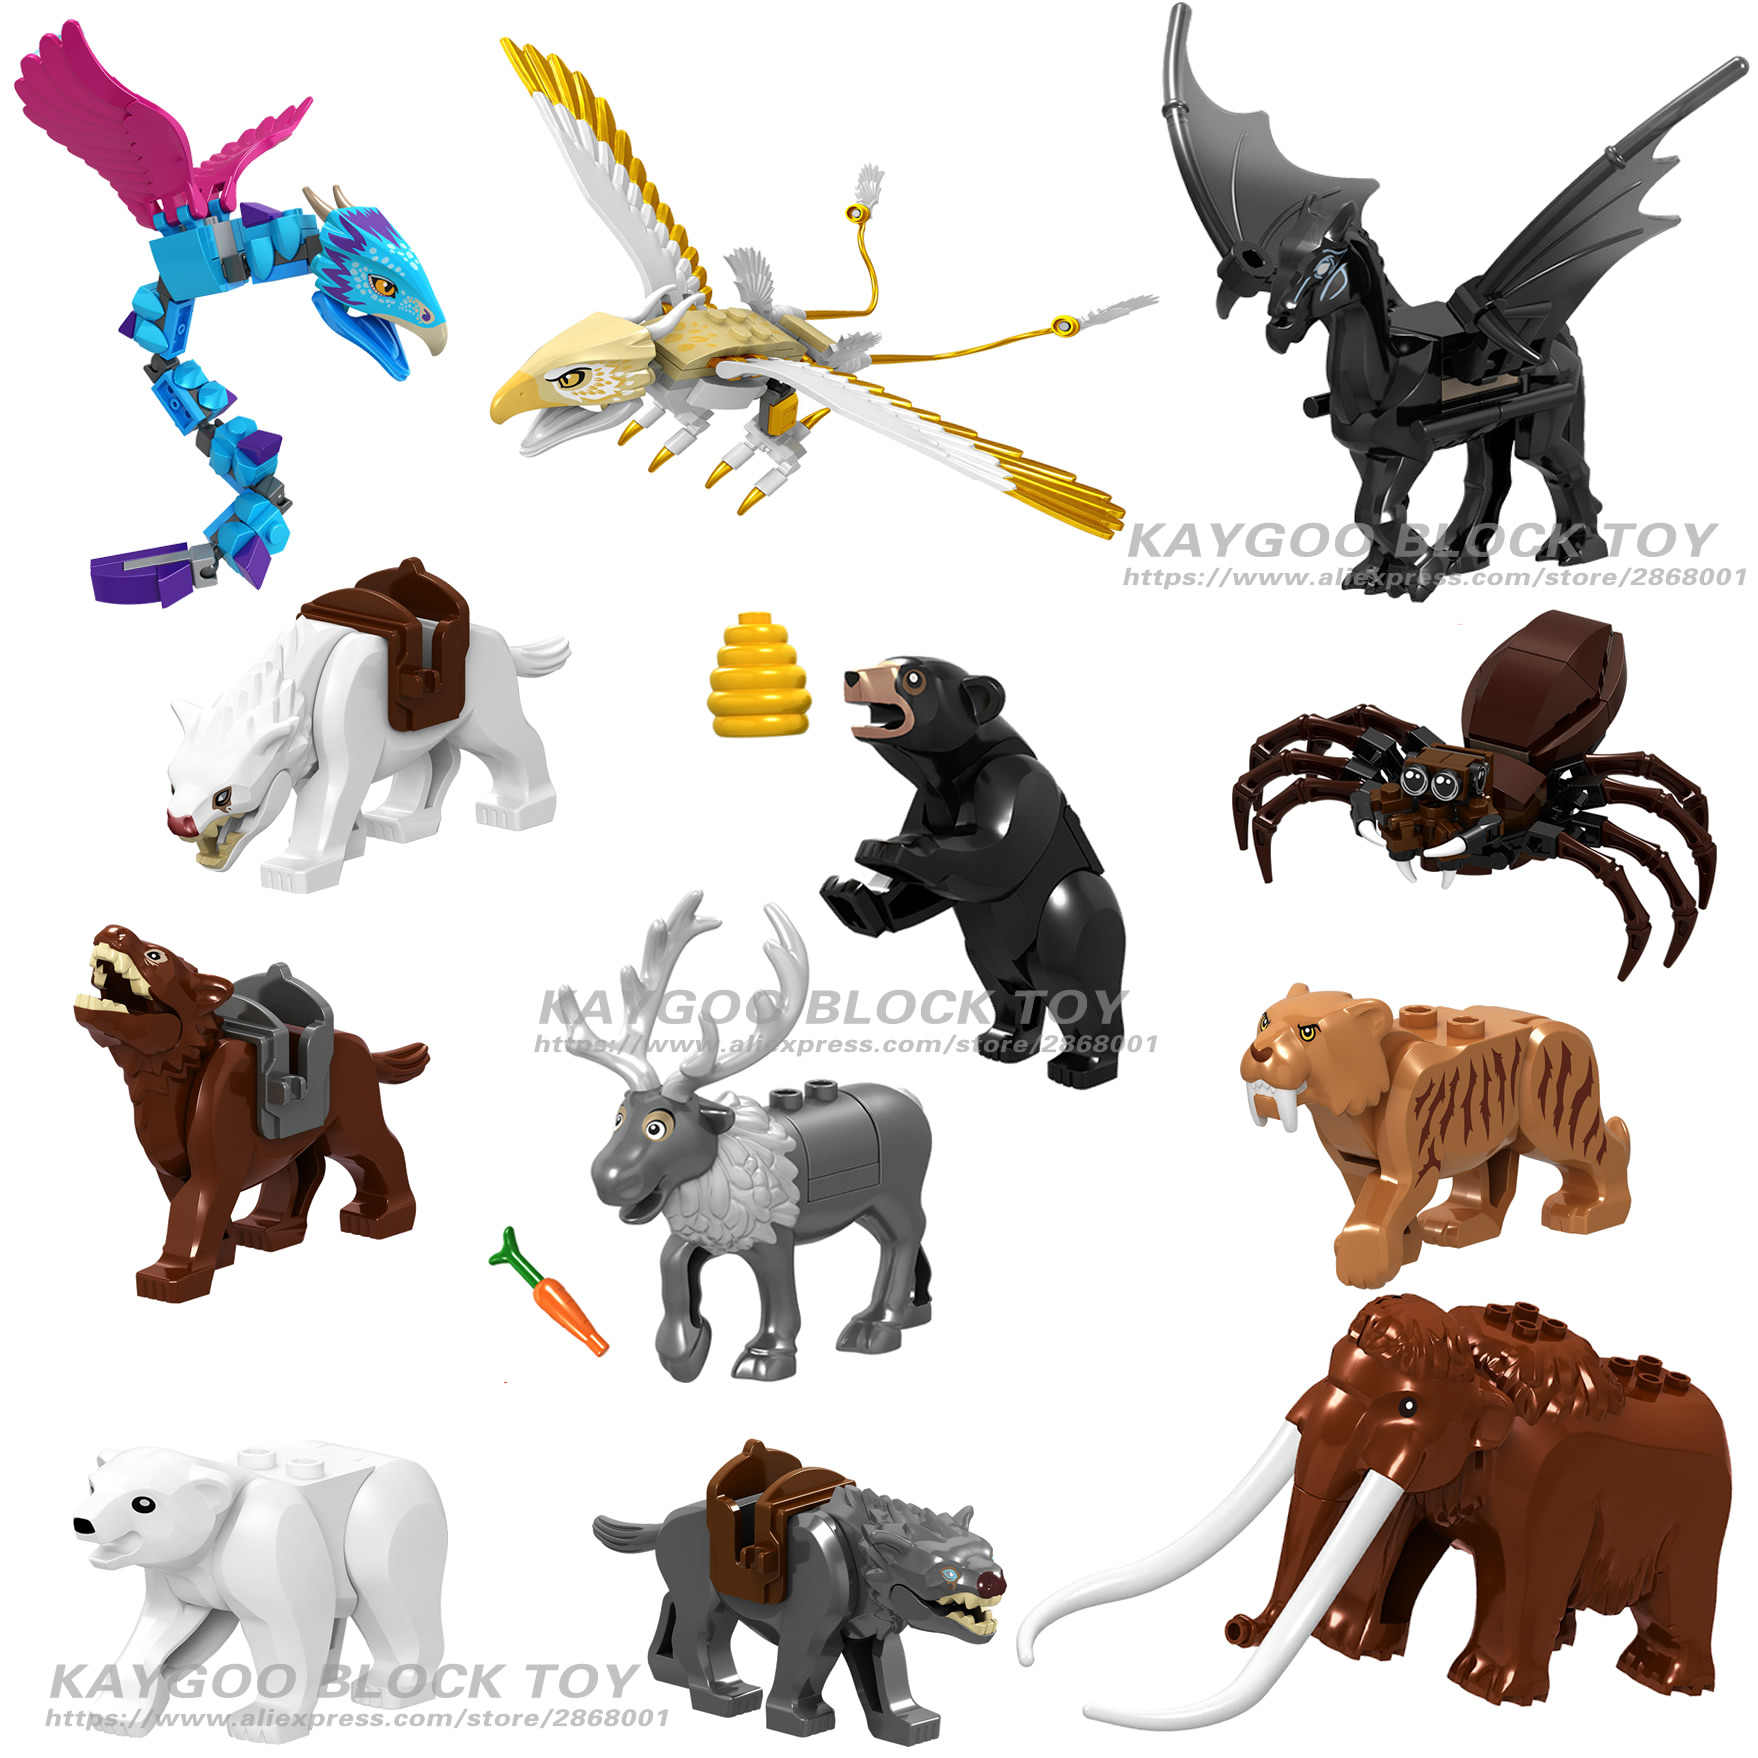 Panther Snow Leopard Single Sale Crocodile Tiger Animal Cow Cattle Horse Shark Building Blocks Set Model Bricks kits Bricks Toys